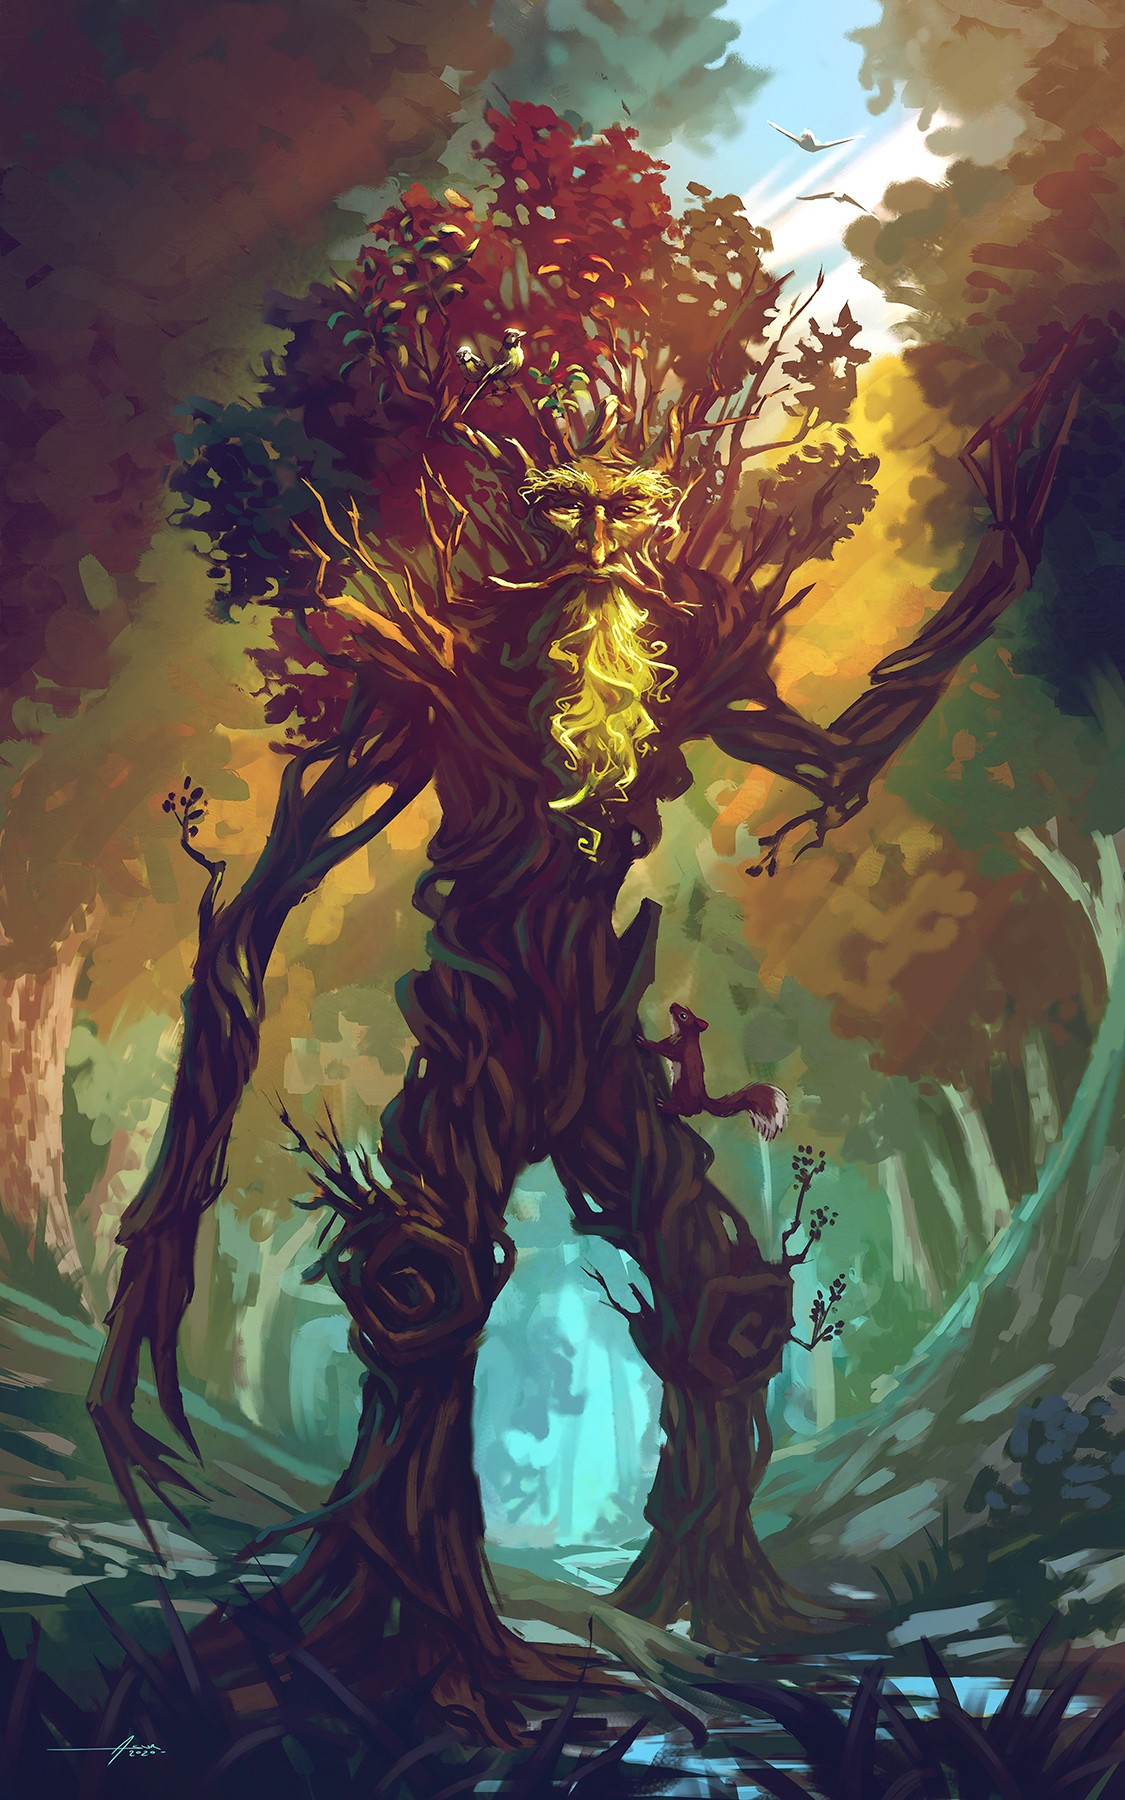 The Green Man par Asur Misoa